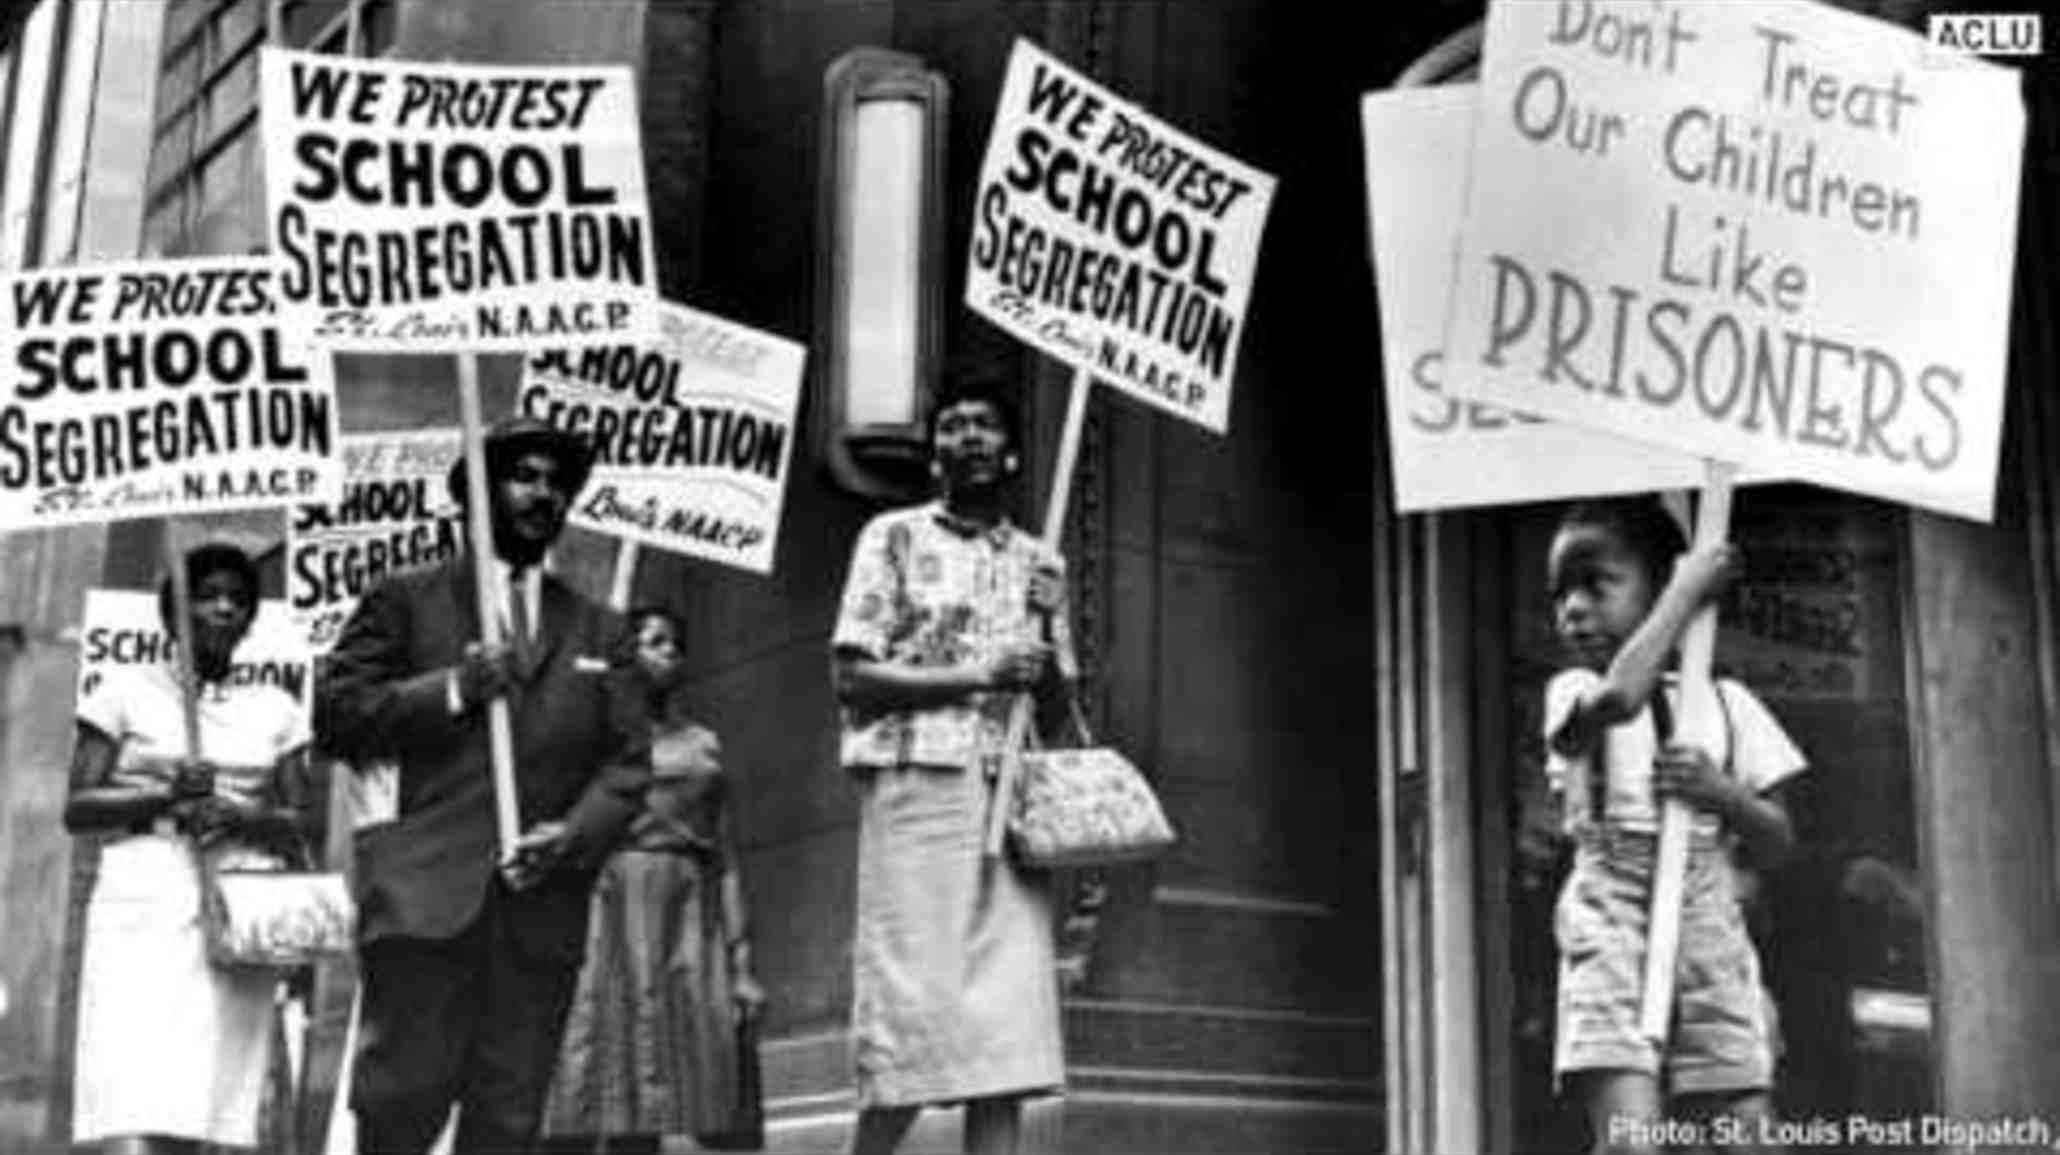 a history of discrimination in america How have power and agency been revealed in educational issues involving  minorities more specifically: how have politicians, policymakers, practitioners,  and.